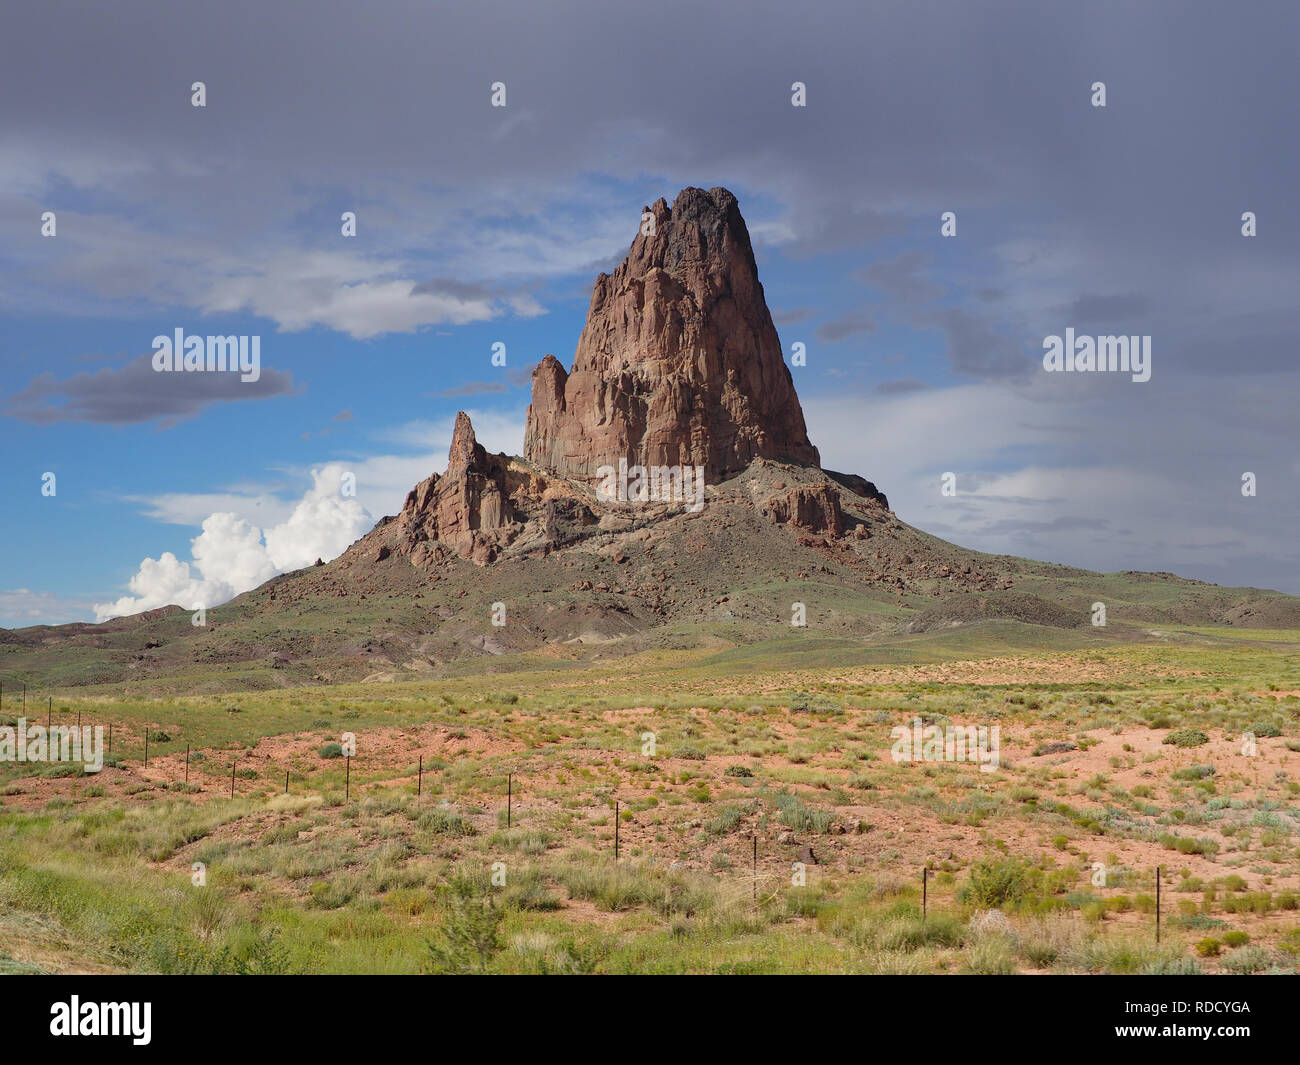 Towering sandstone at Monument Valley, AZ - Stock Image